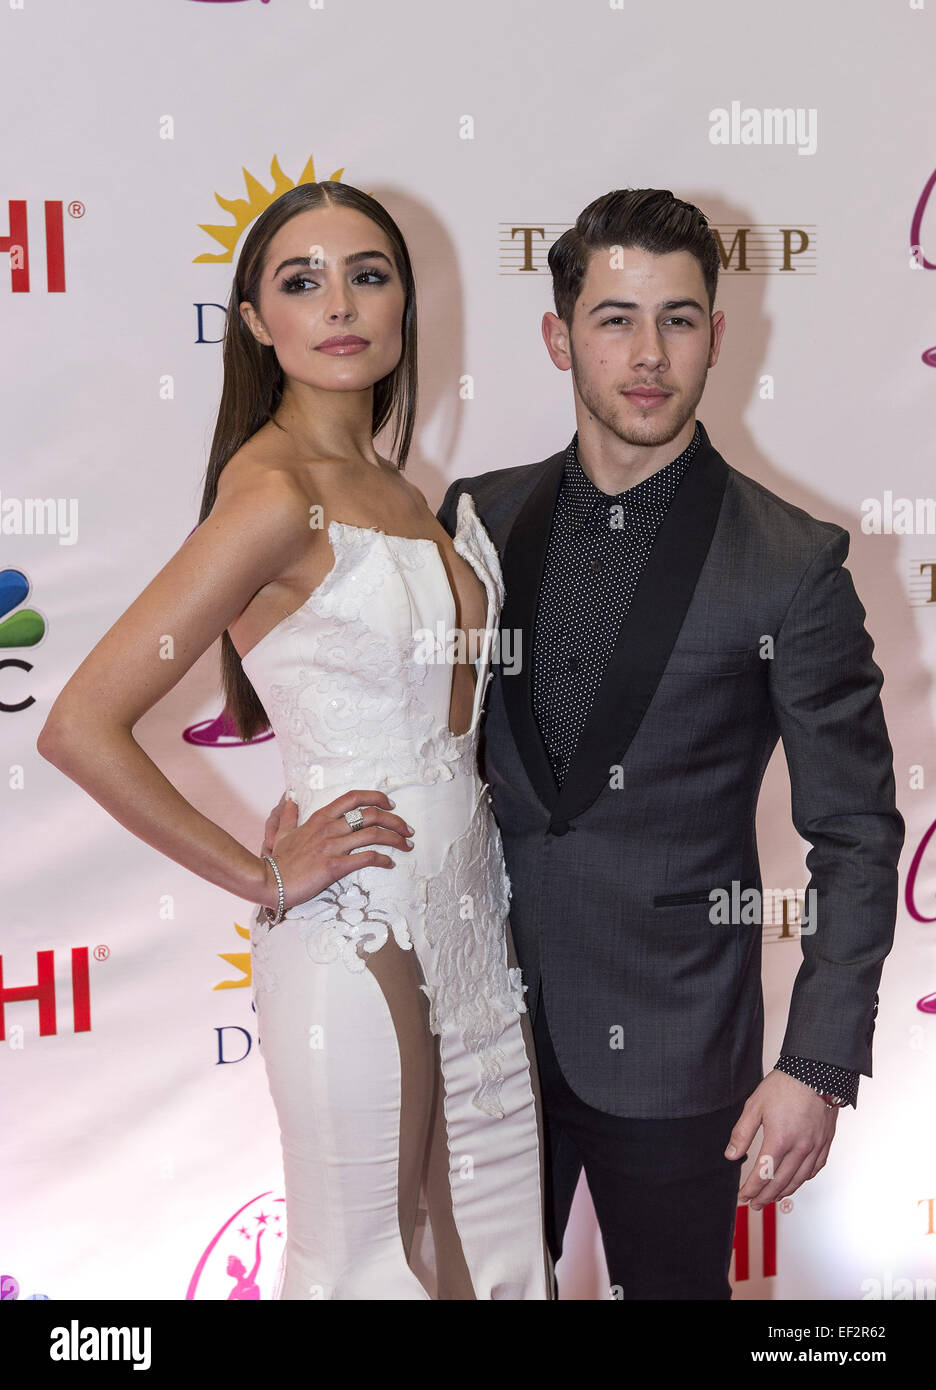 jonas brother dating miss universe Middle jonas brother nick jonas is dating miss universe olivia culpo the duo were spotted out on a date at the ovest pizzoteca restaurant in new york city late last week.